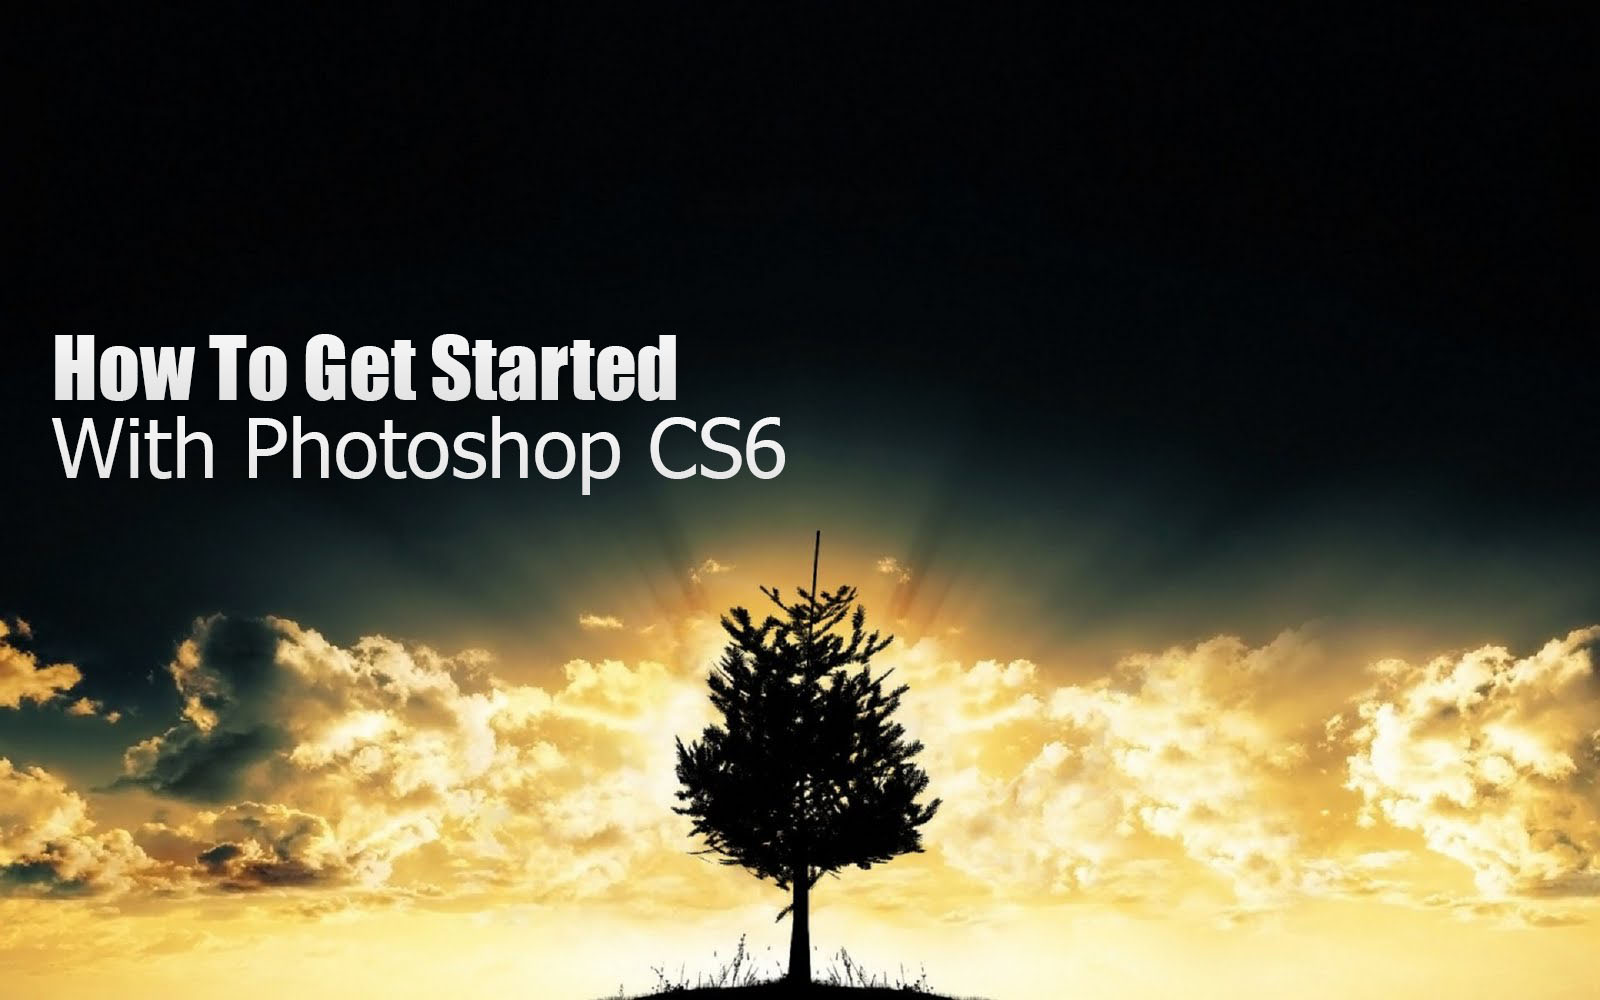 How To Get Started With Adobe Photoshop